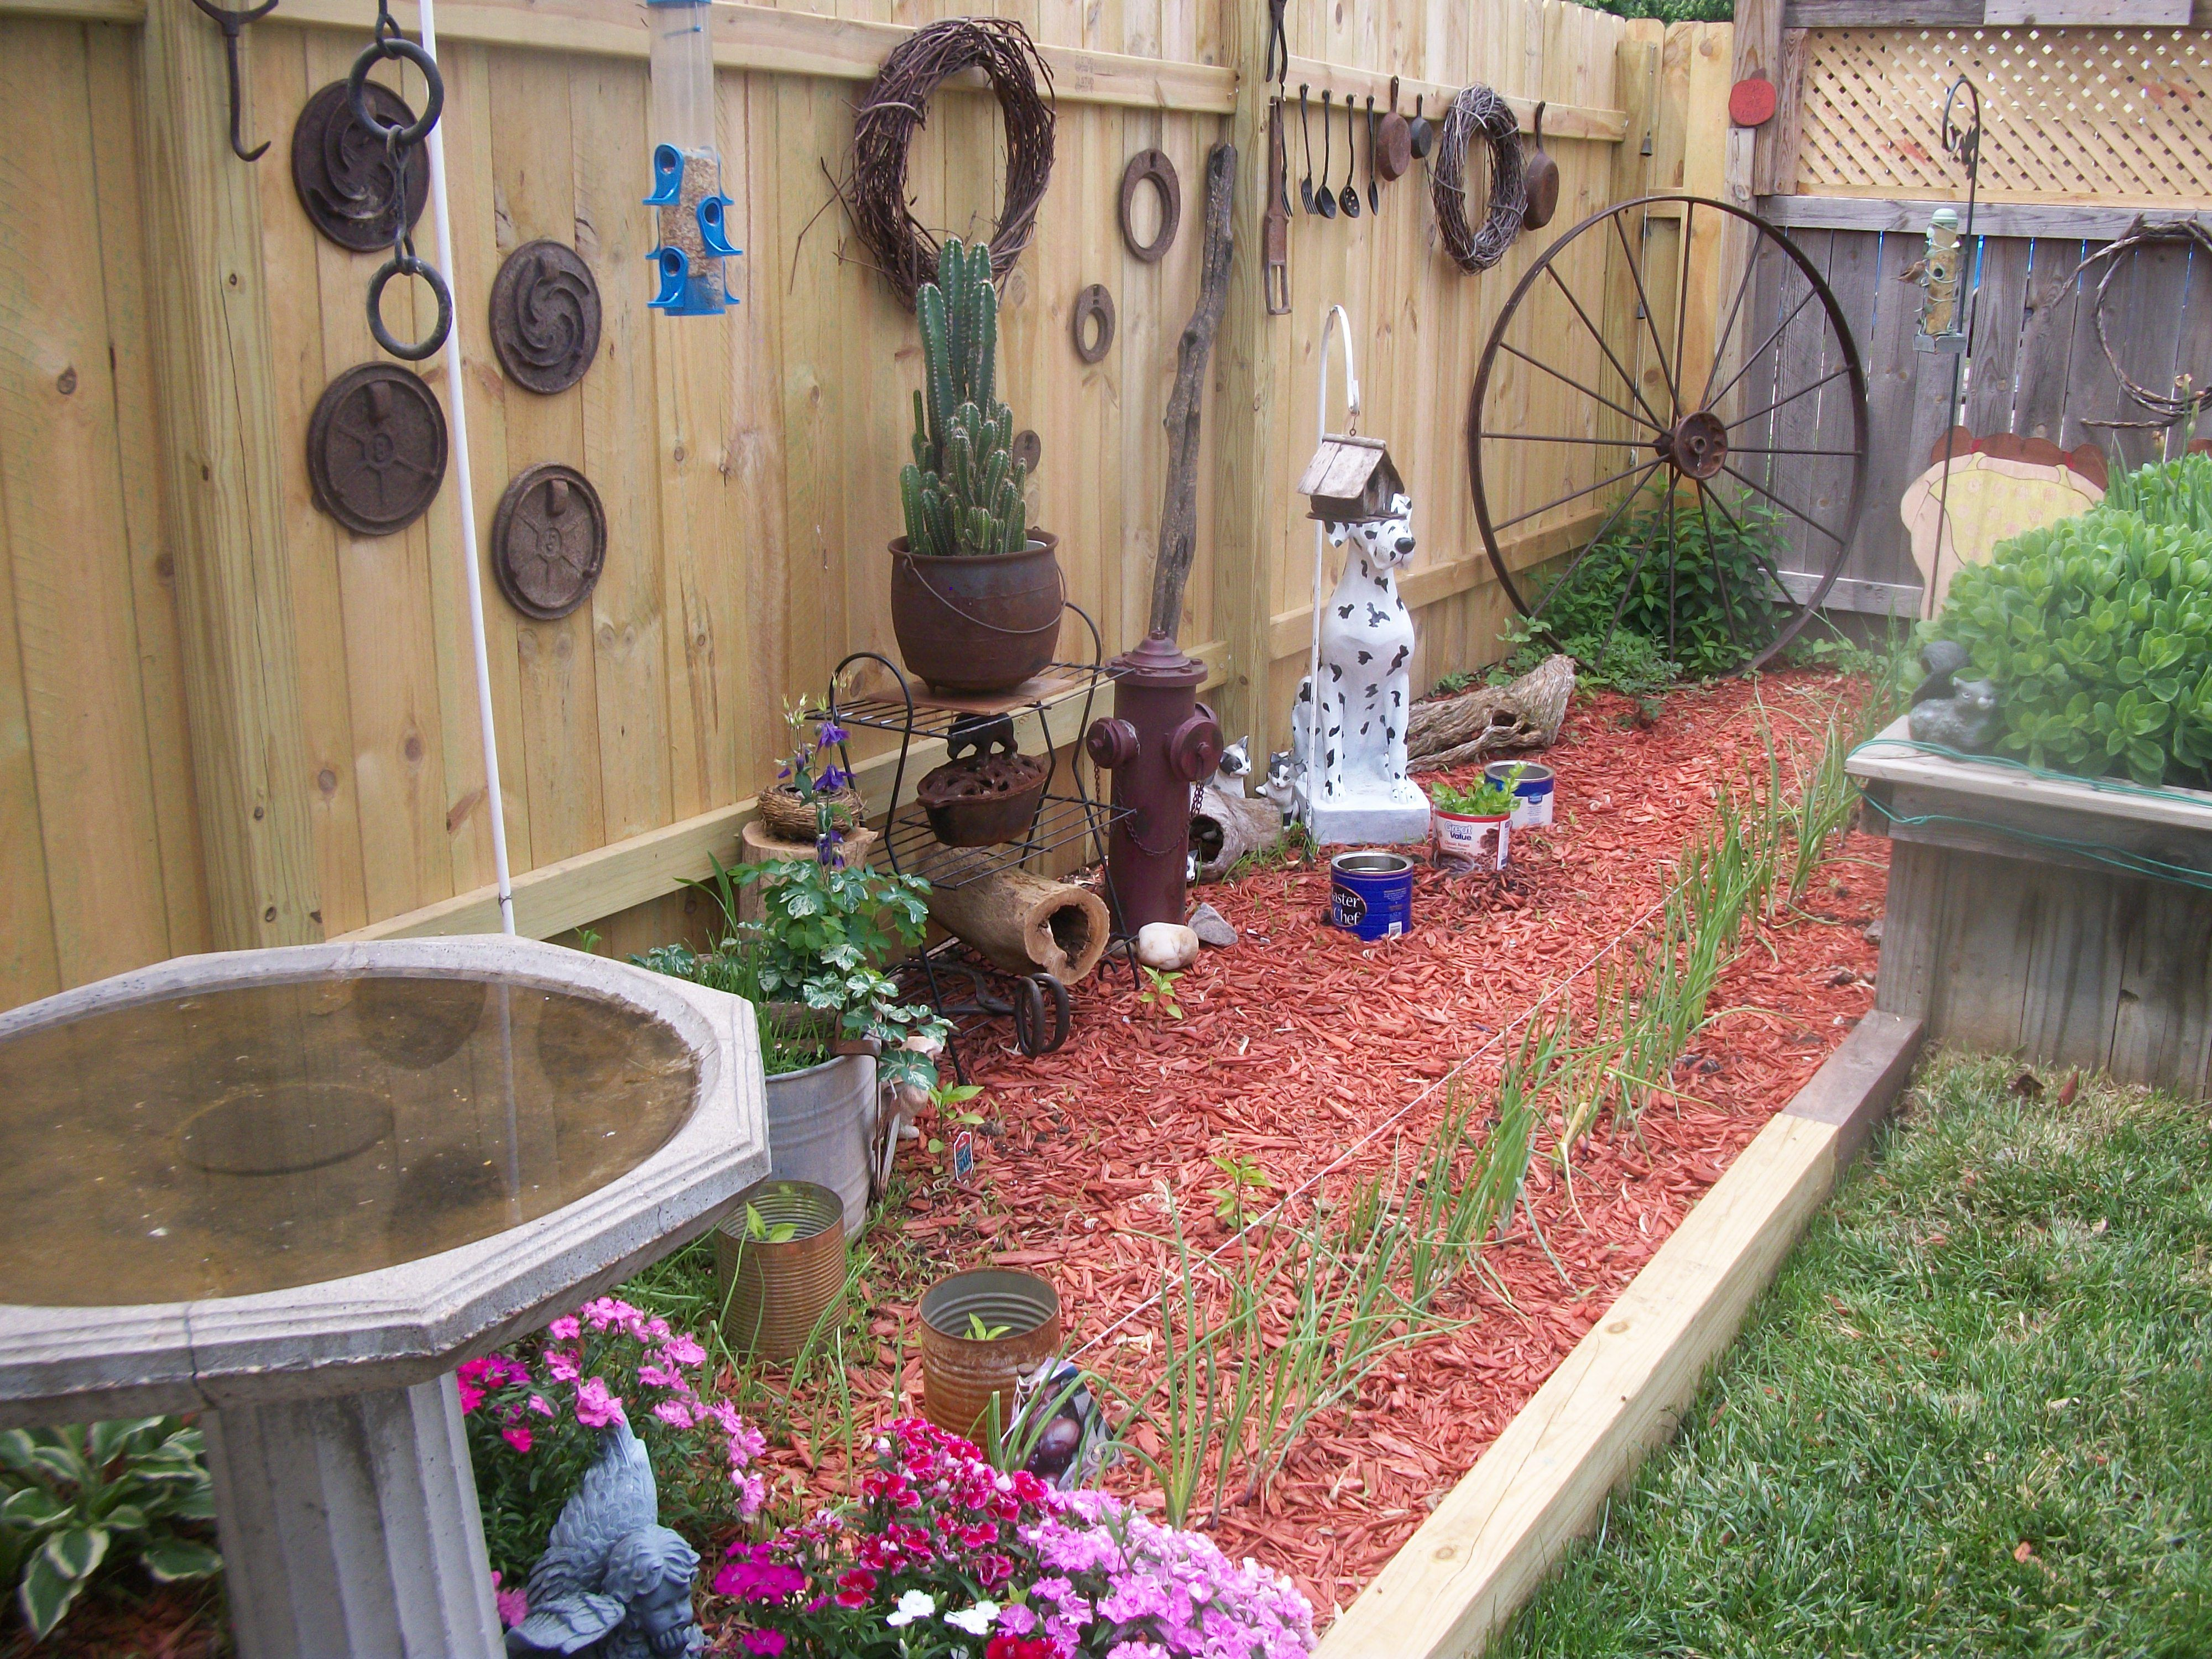 Rustic gardening ideas pinterest photograph my rustic gard for Rustic landscape ideas